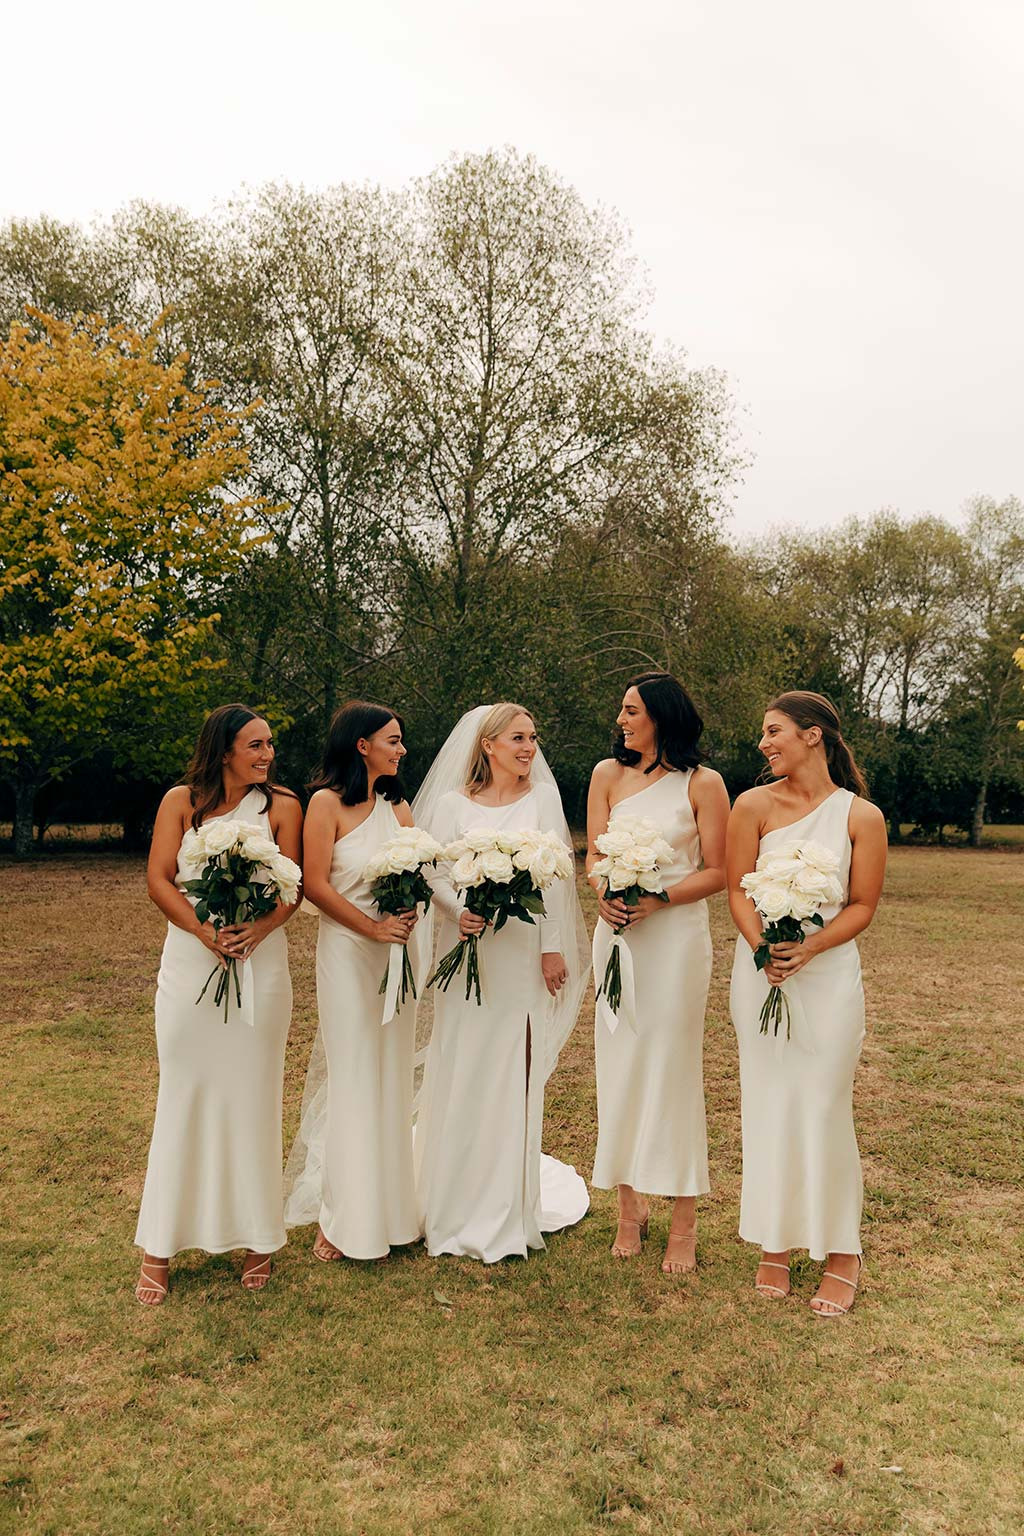 Vinka Design Bridal Wear features Real Wedding Matt and Emilia - bride and bridesmaids, bride wearing Audrey gown from Modern Muse Collection with long veil